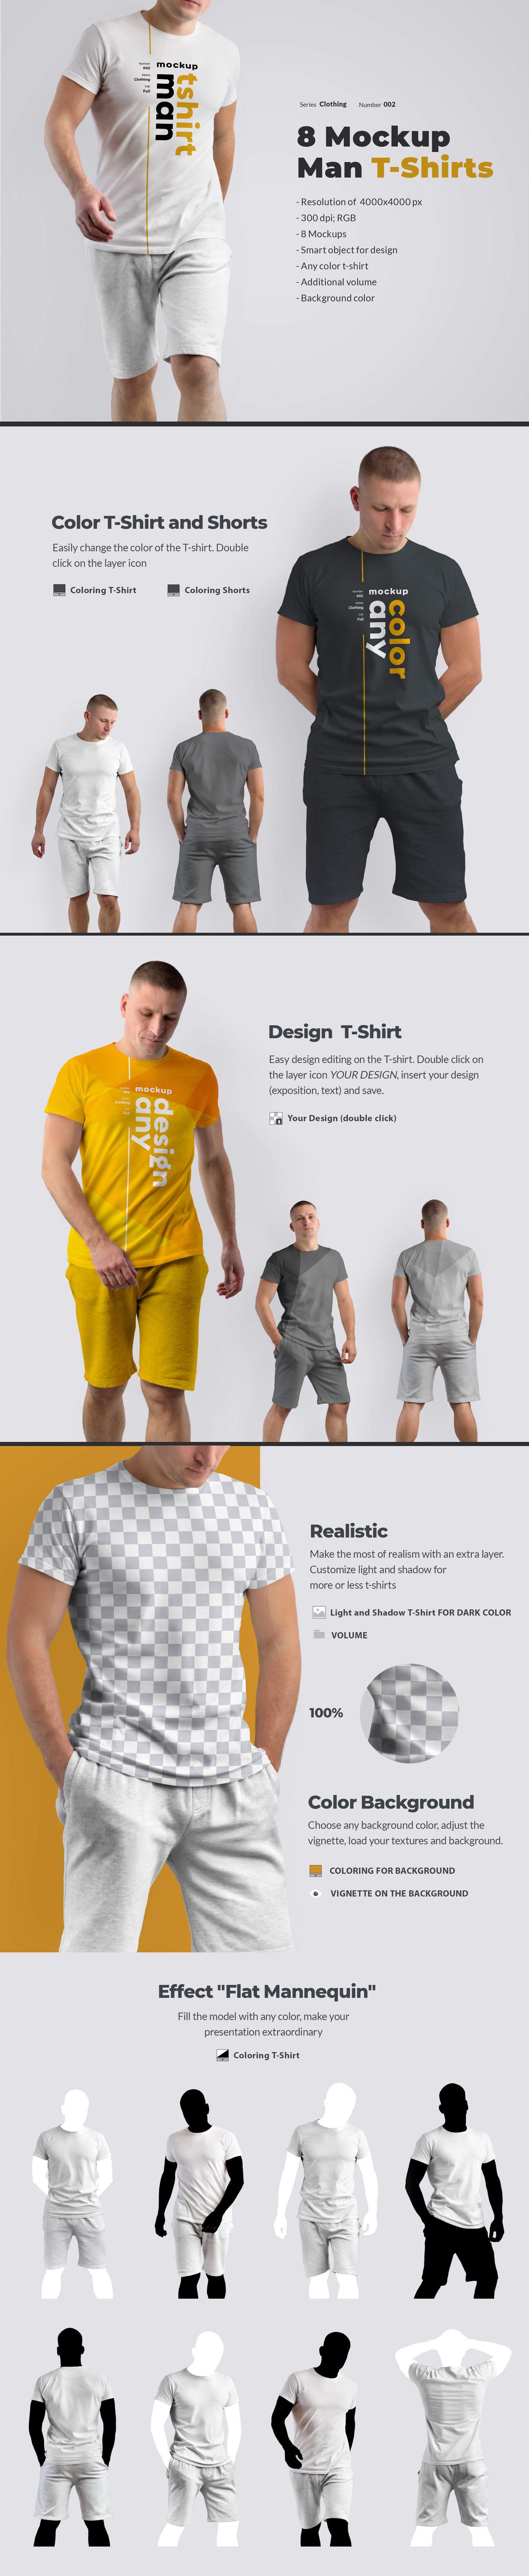 Download 8 Mockups T Shirts On The Man In Apparel Mockups On Yellow Images Creative Store PSD Mockup Templates